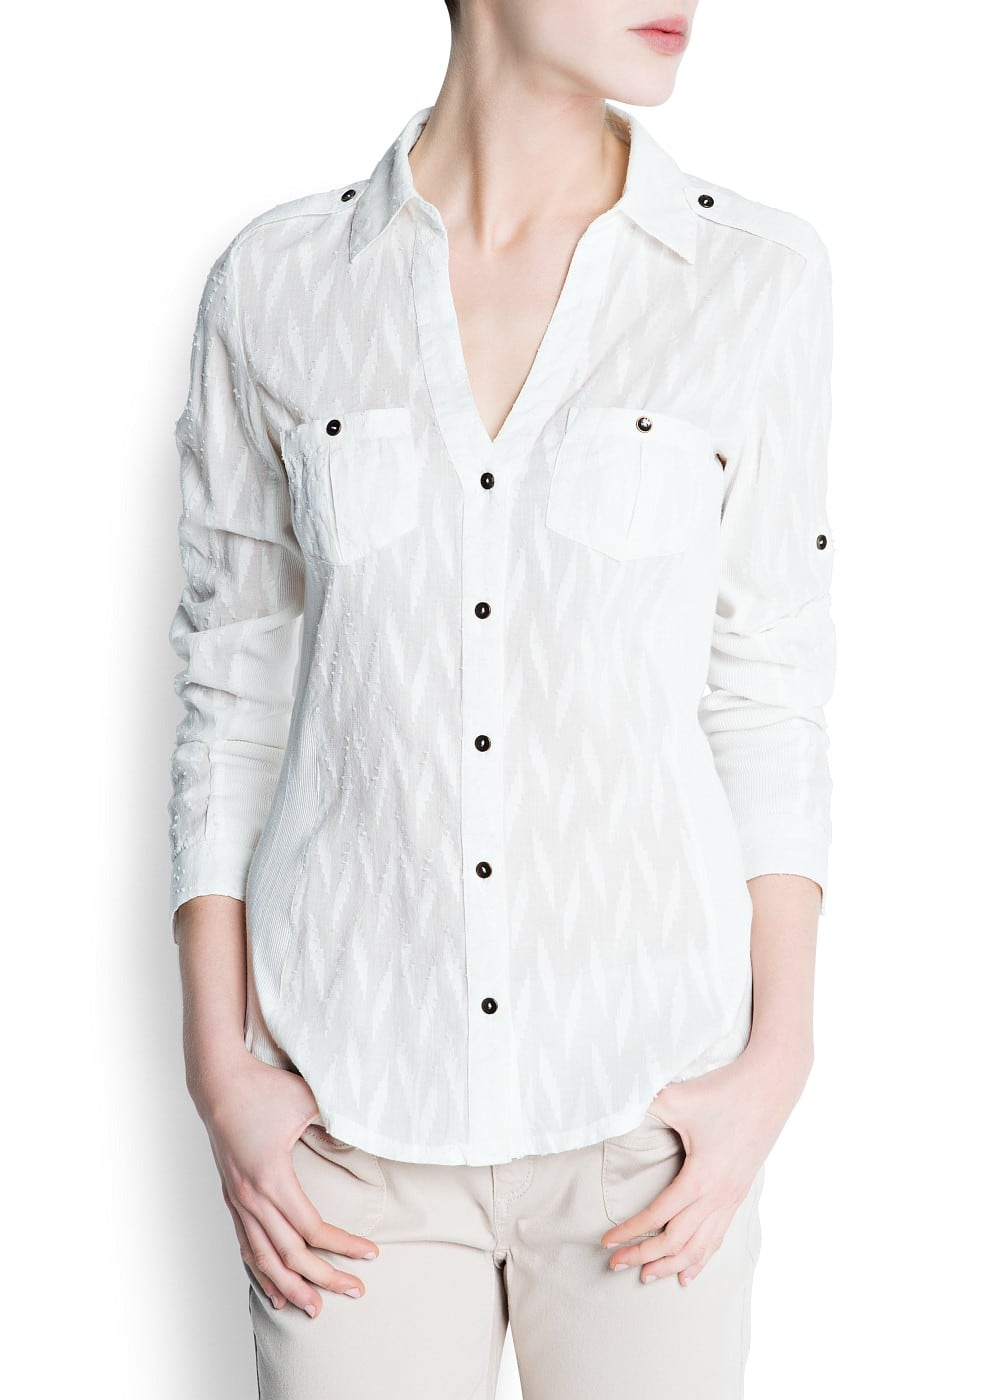 Geometric shaped texture shirt